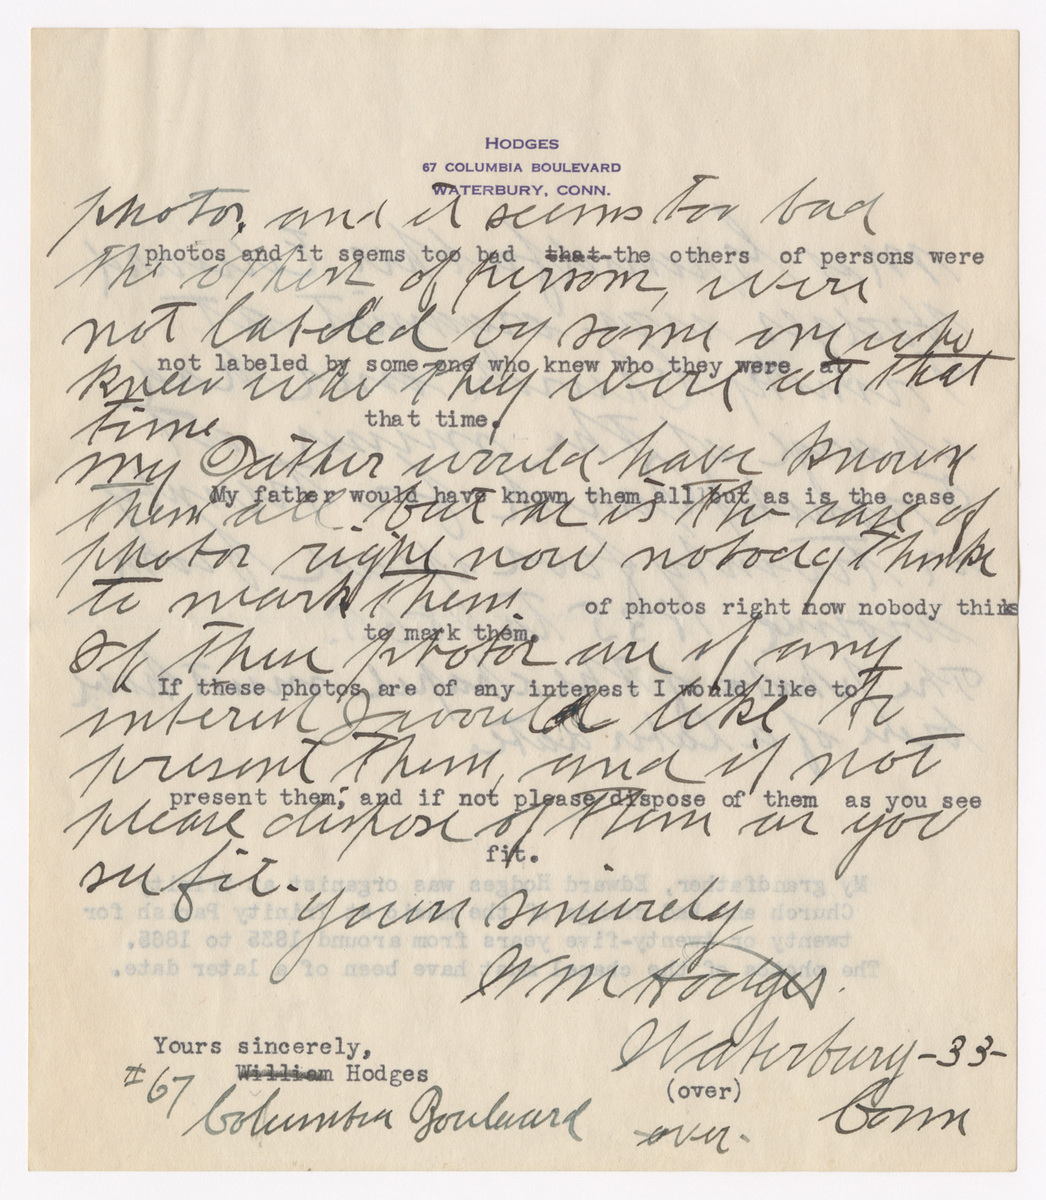 Letter from William Hodges to Columbia College Librarian. Page 2